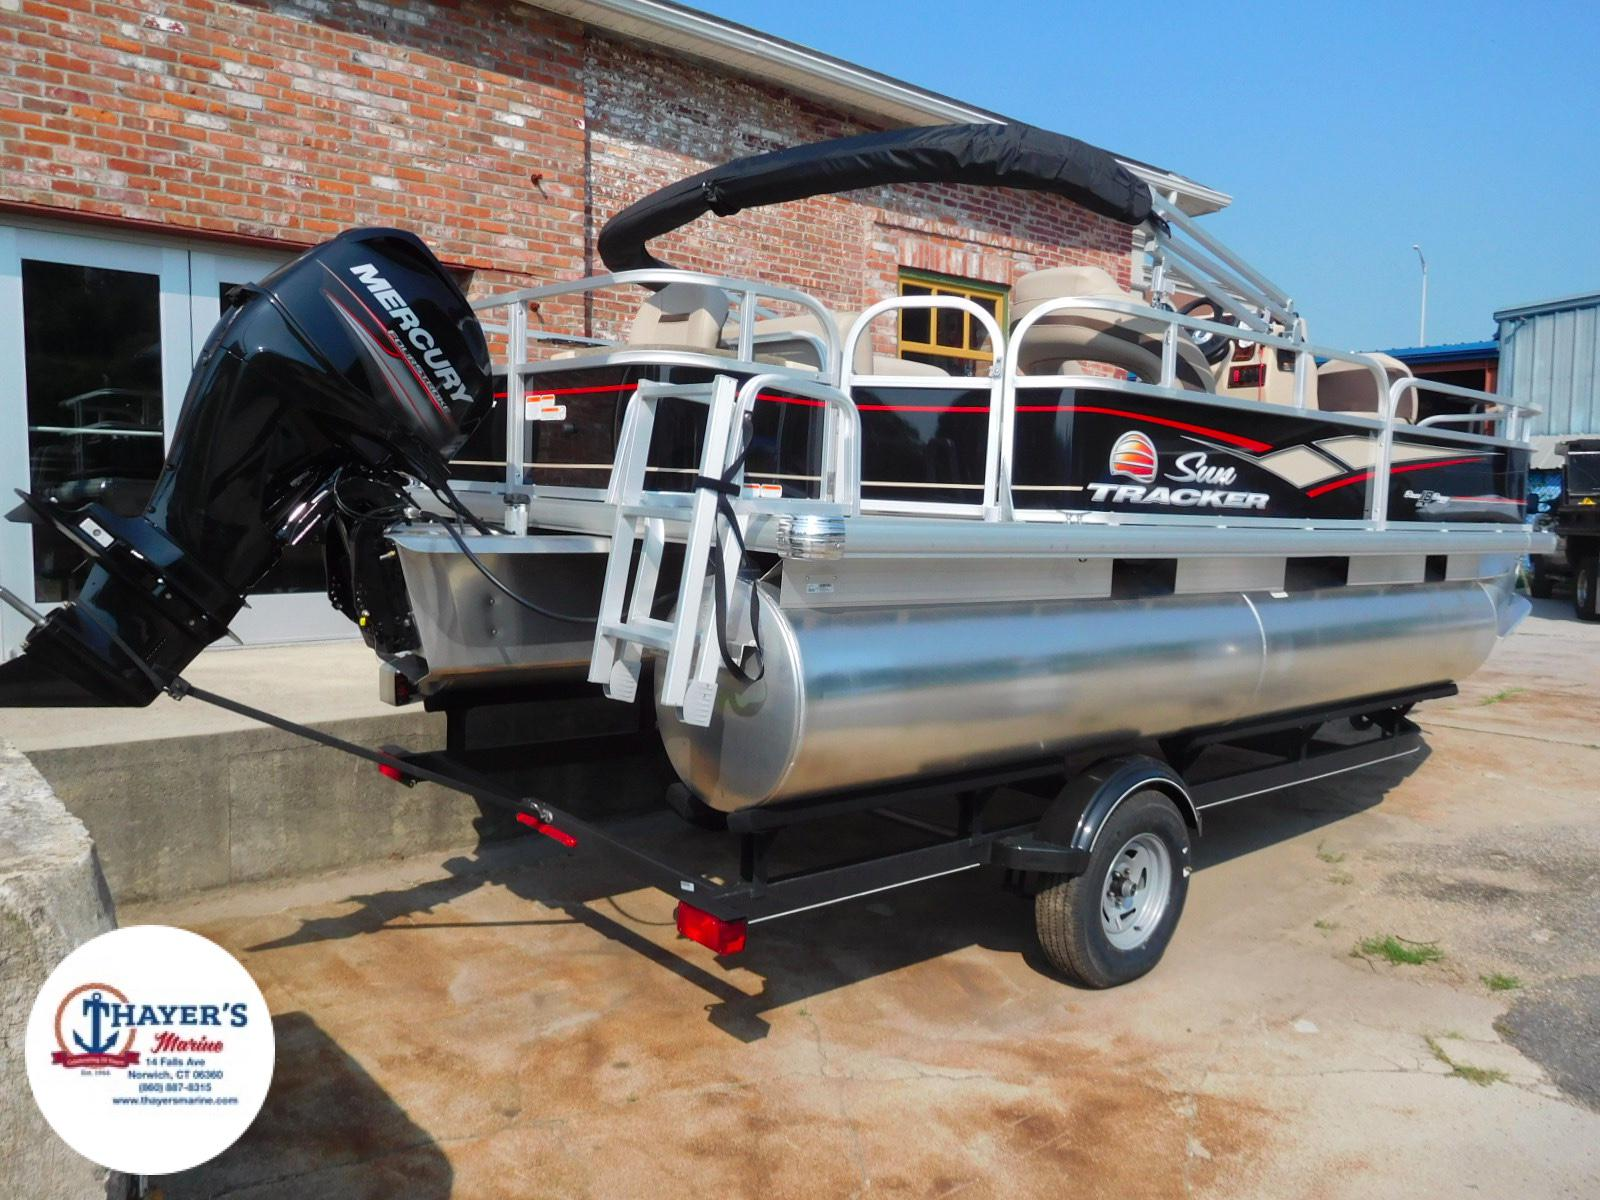 2018 Sun Tracker boat for sale, model of the boat is Bass Buggy 18 DLX & Image # 26 of 35